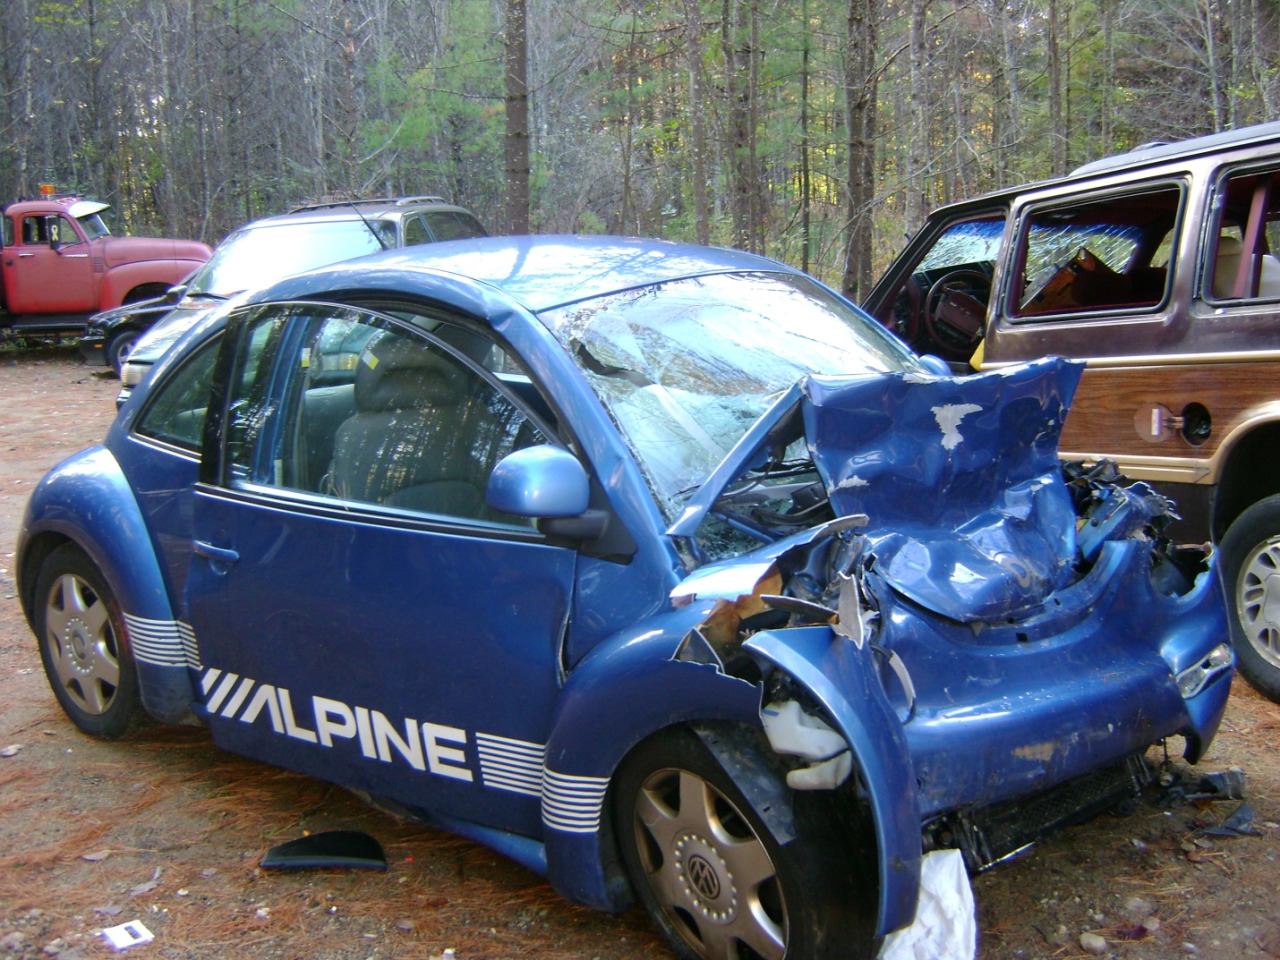 Blue Volkswagon bug smashed up due to a car crash